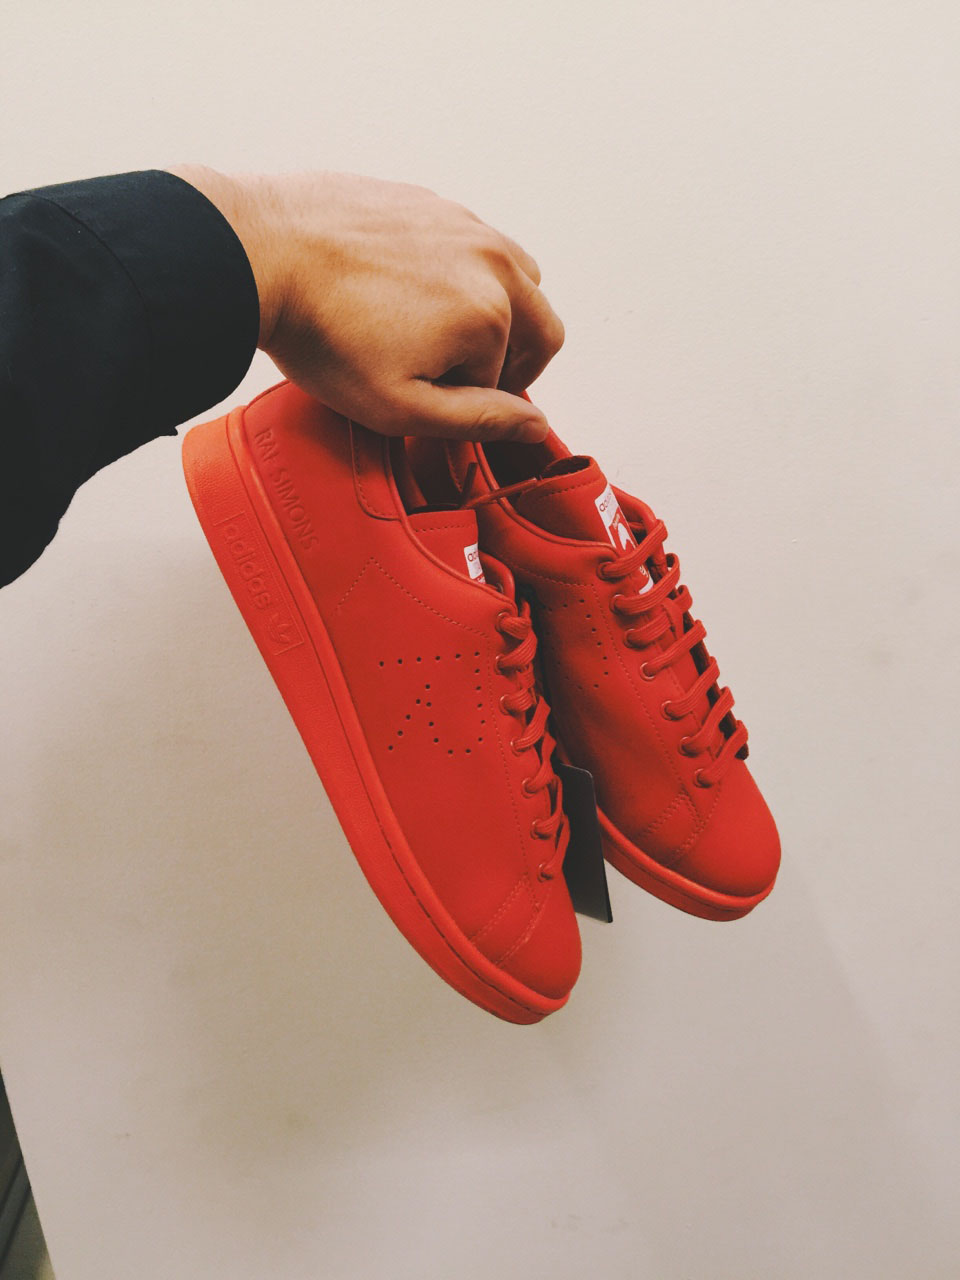 RAF SIMONS × ADIDAS Stan Smith Sneakers in Red